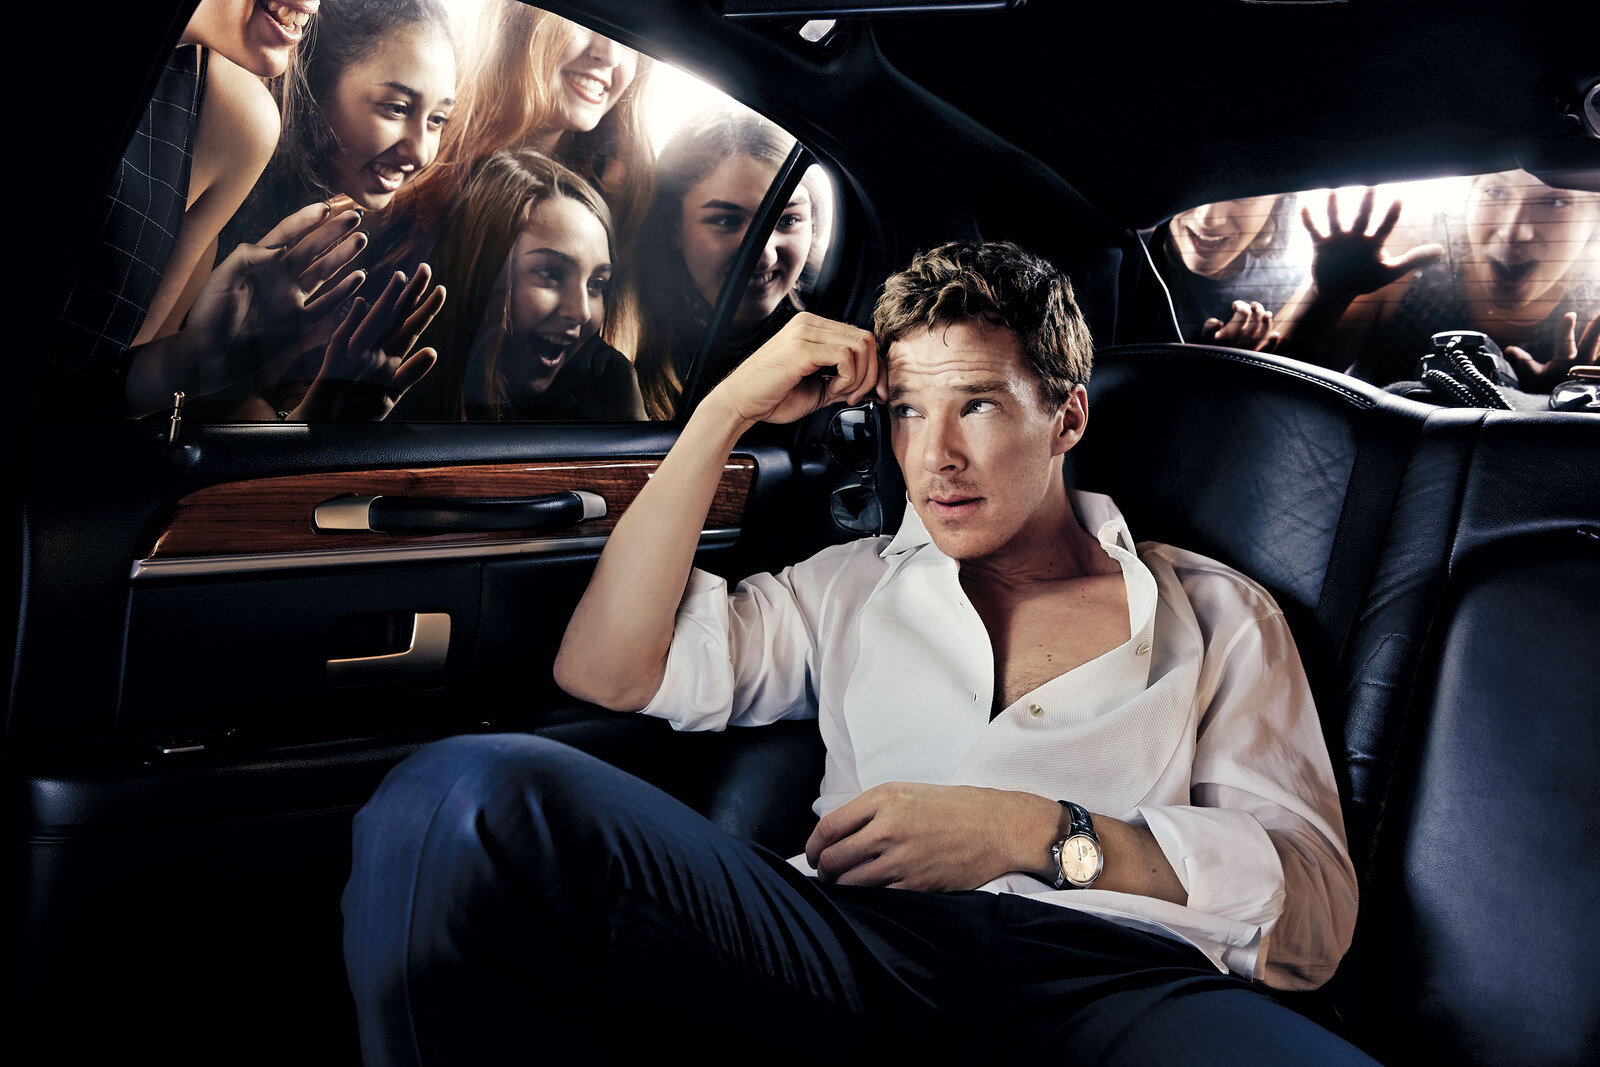 Benedict Cumberbatch in a limo with girls pressing on the windows staring at him.